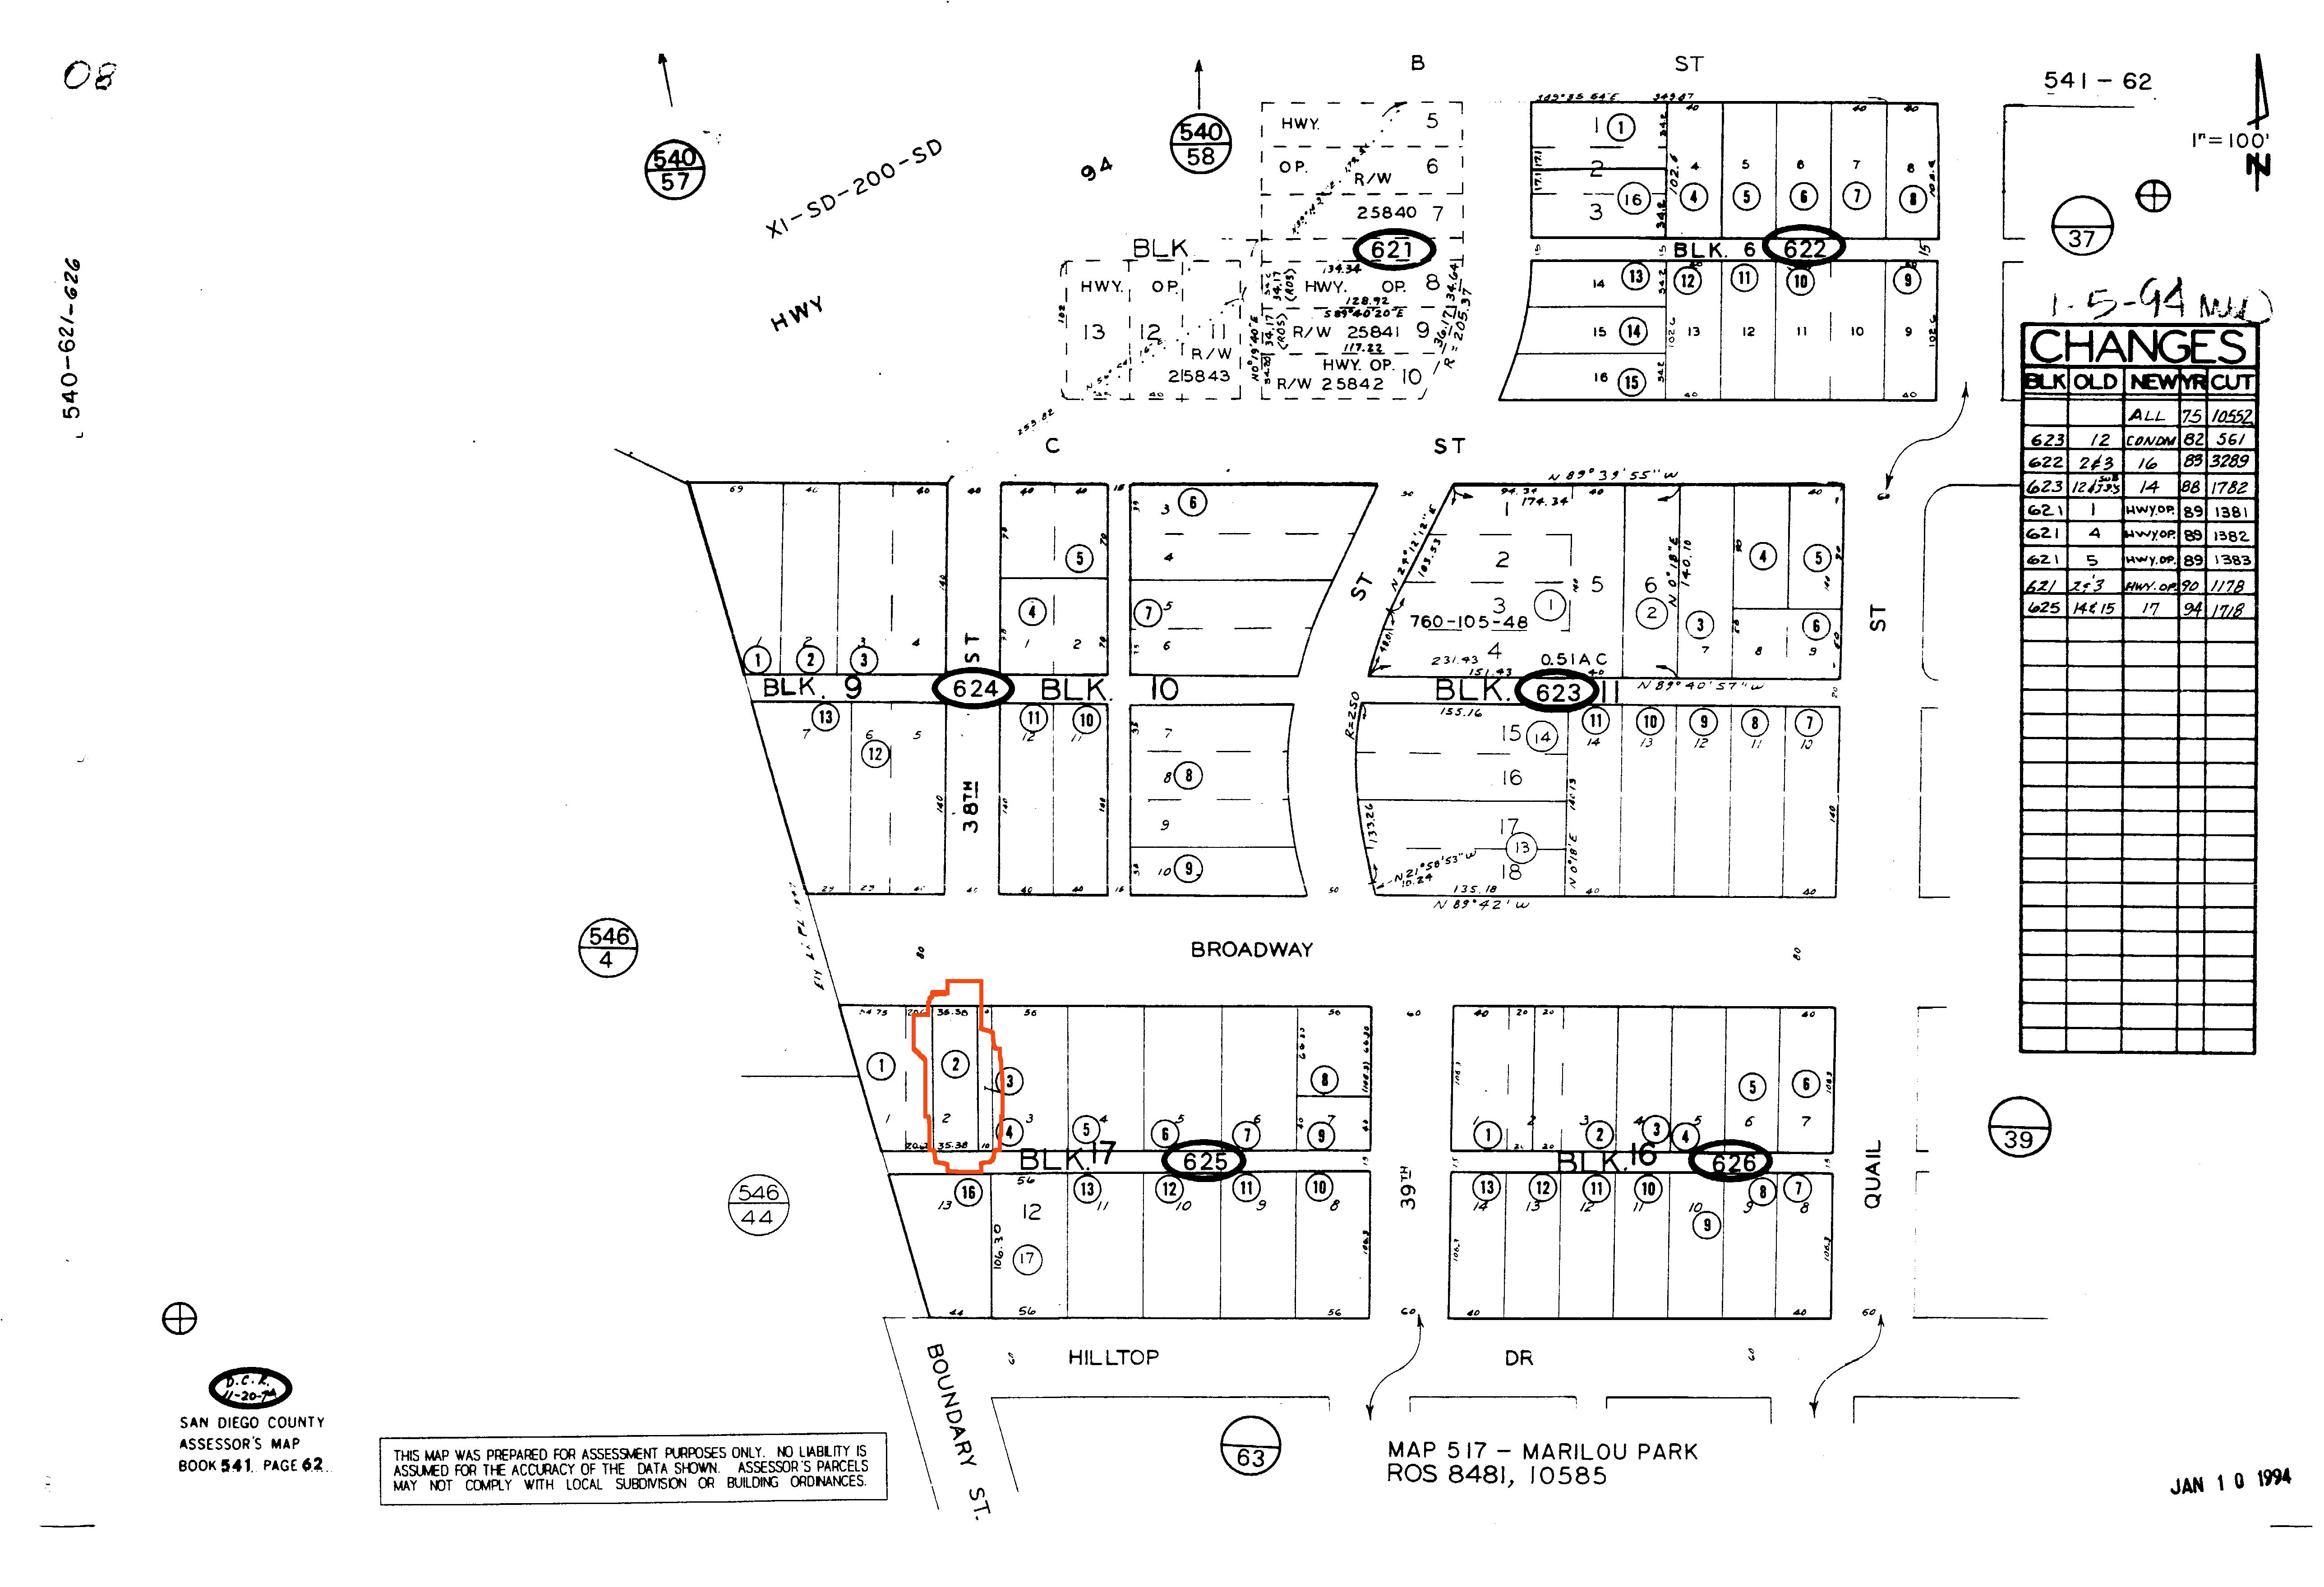 3791 Broadway San Diego - Vacant buildable Lot